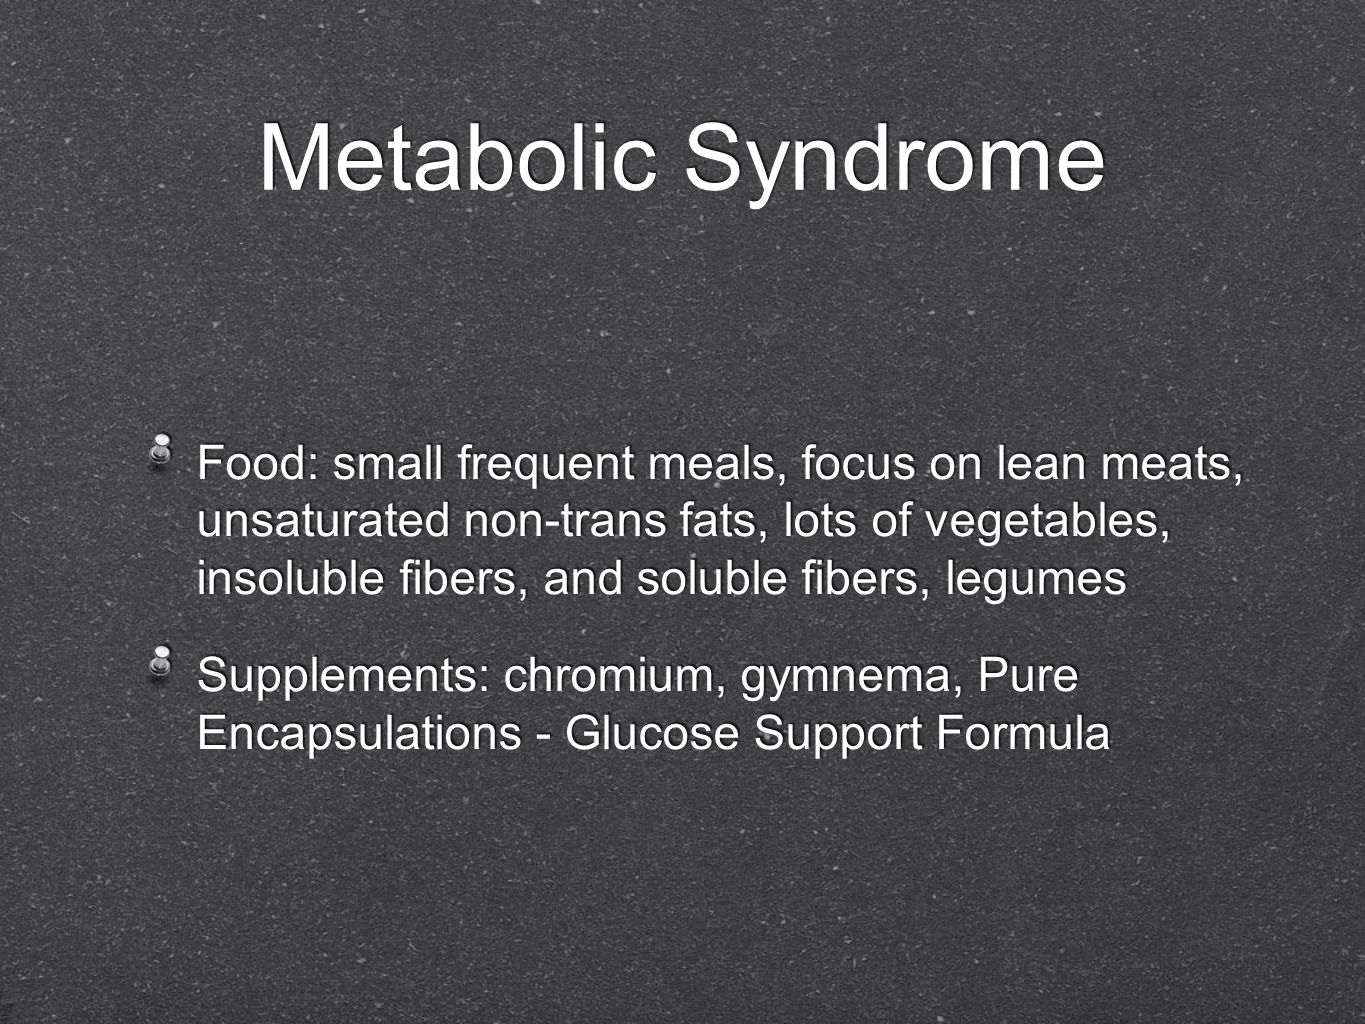 Metabolic Syndrome Food: small frequent meals, focus on lean meats, unsaturated non-trans fats, lots of vegetables, insoluble fibers, and soluble fibers, legumes Supplements: chromium, gymnema, Pure Encapsulations - Glucose Support Formula Food: small frequent meals, focus on lean meats, unsaturated non-trans fats, lots of vegetables, insoluble fibers, and soluble fibers, legumes Supplements: chromium, gymnema, Pure Encapsulations - Glucose Support Formula